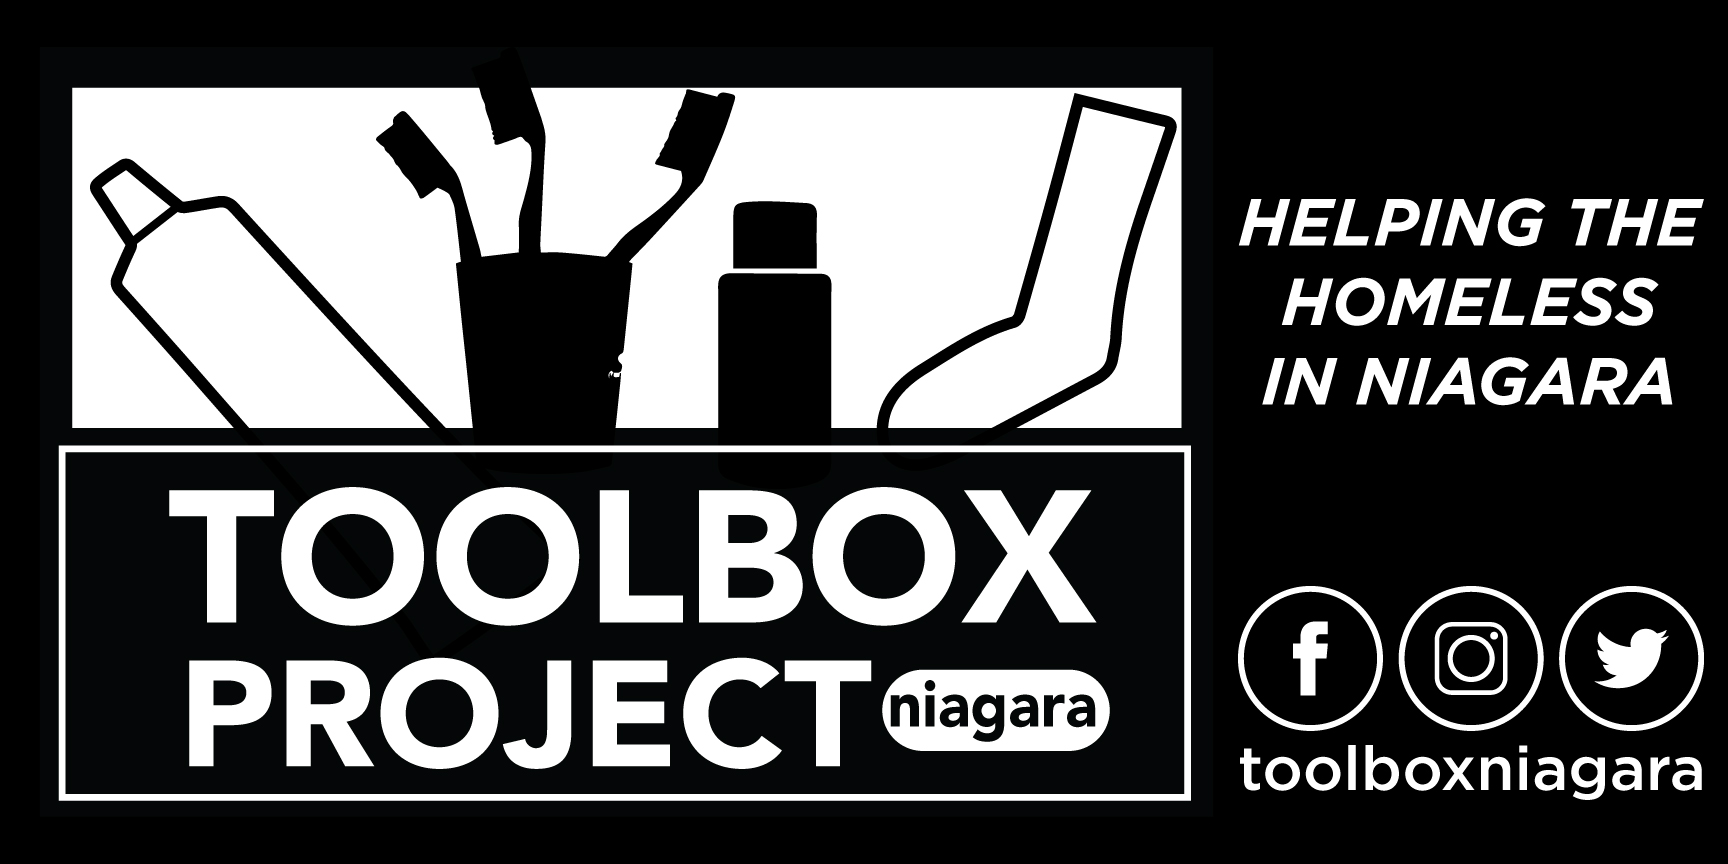 toobox project